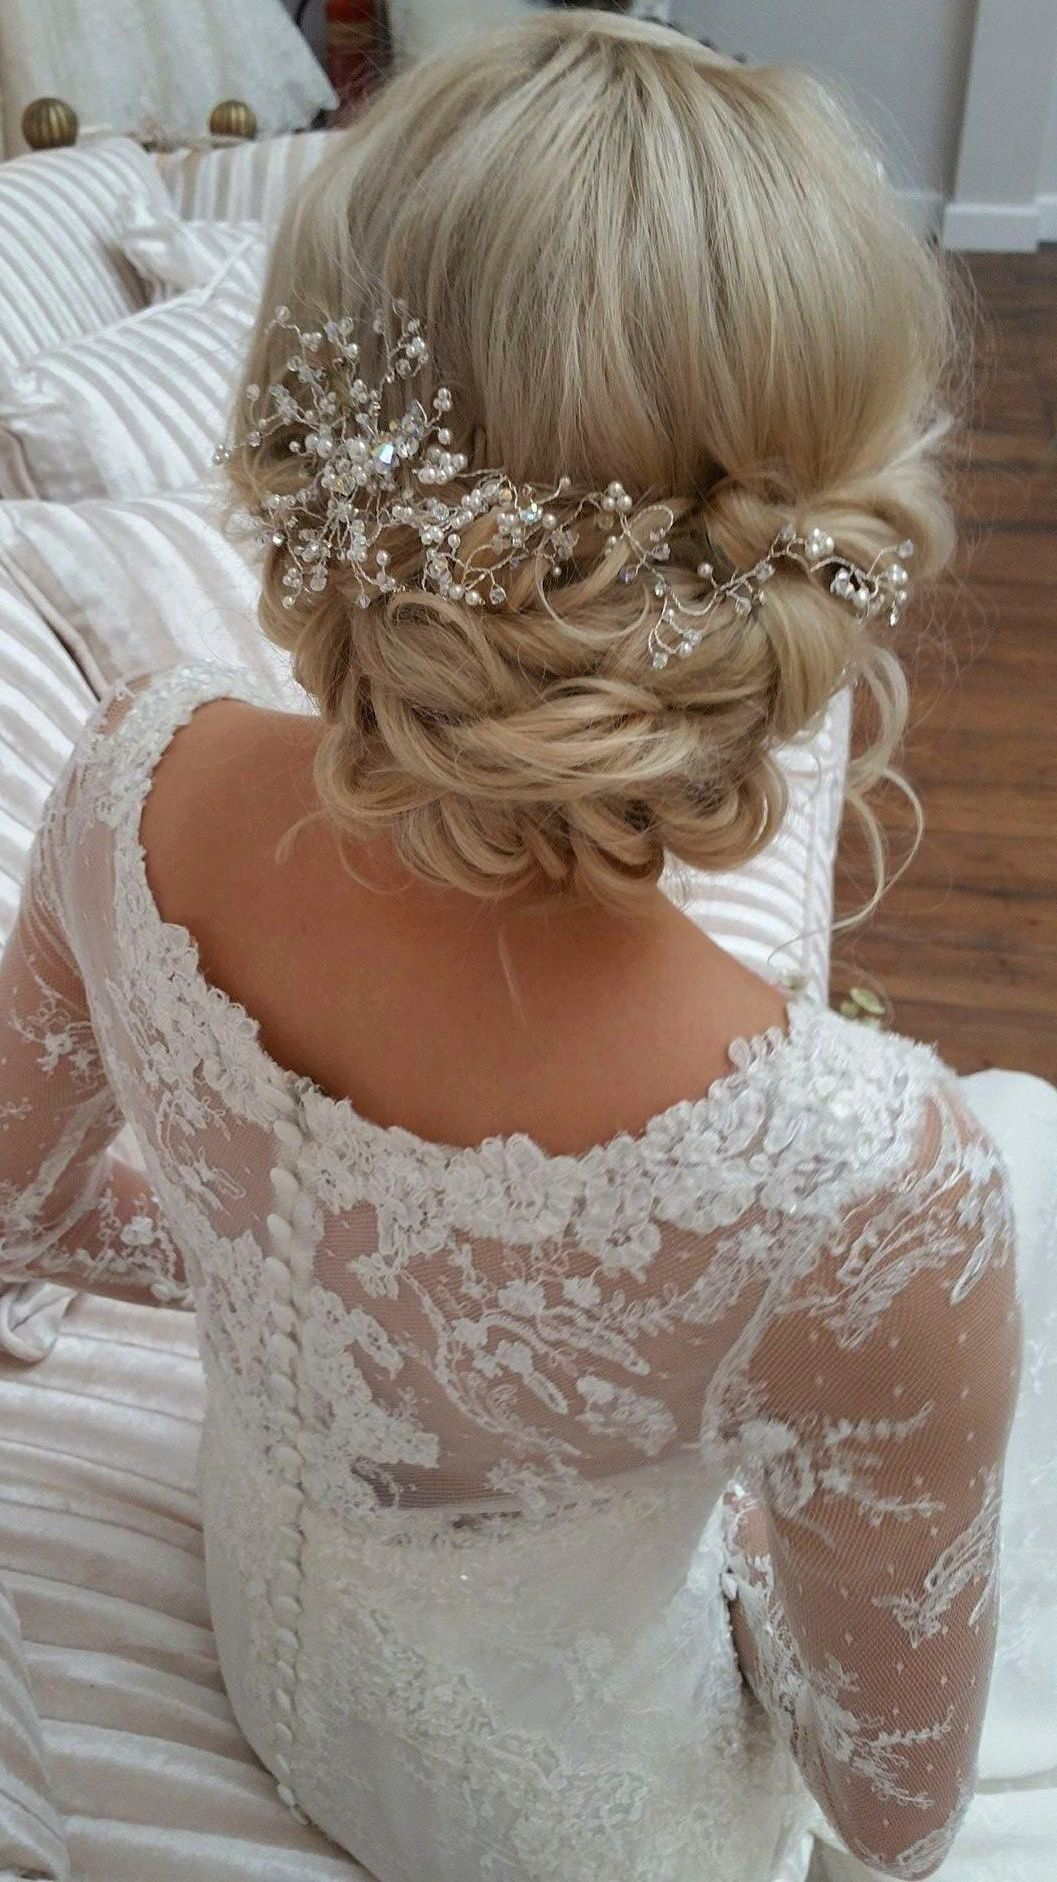 Try This Striking Hairstyle Idea For Your Special Day And Be Ready